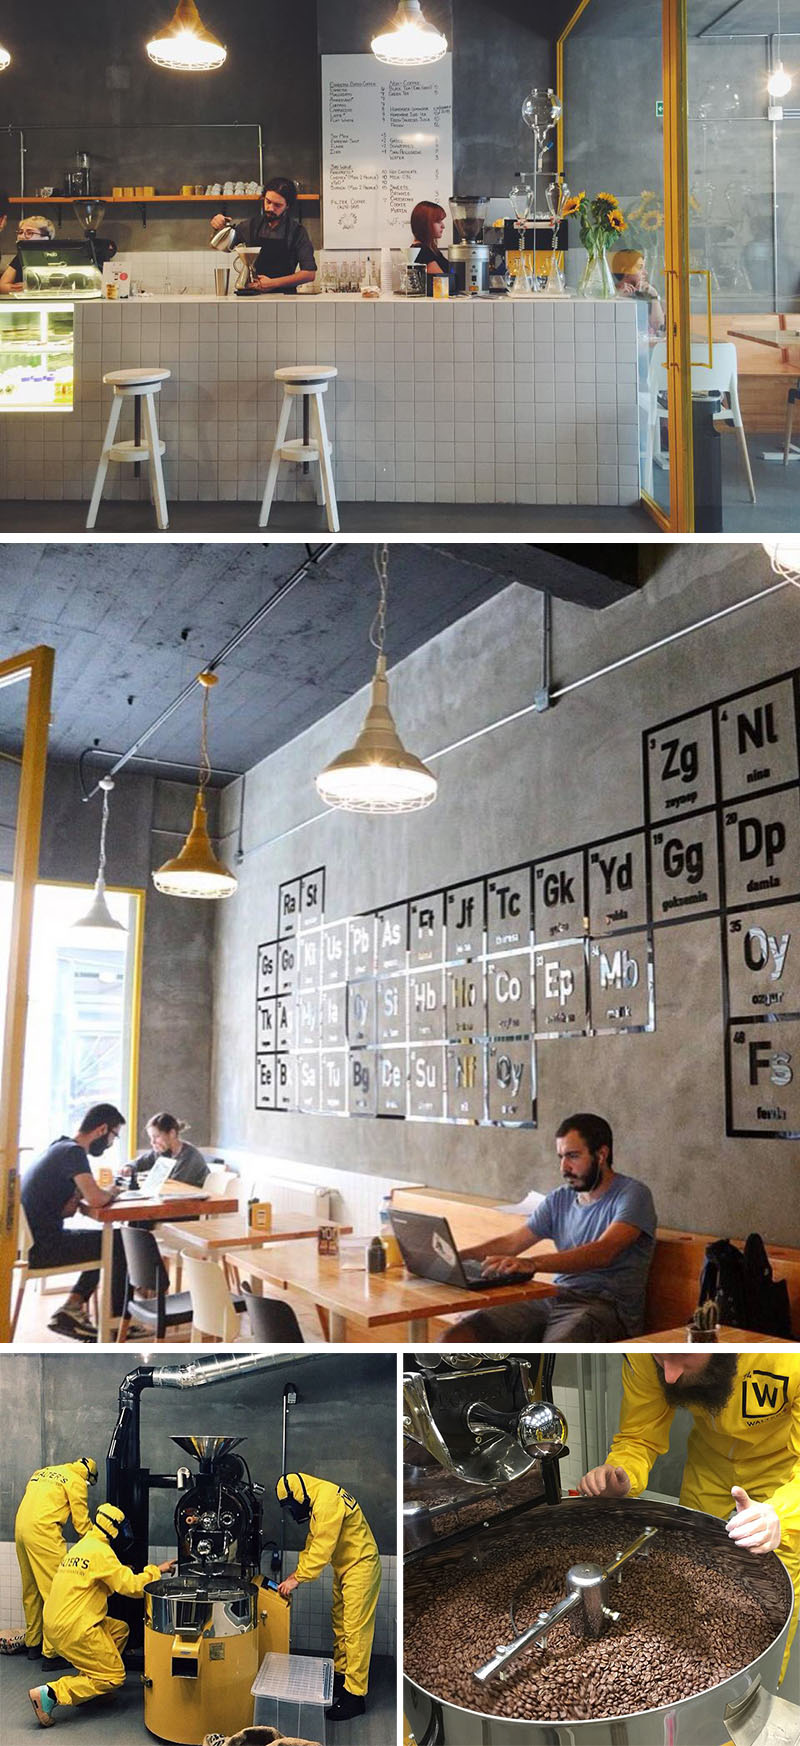 Walter's Coffee Roastery is a modern cafe in Kadikoy, Istanbul inspired by the popular TV show, Breaking Bad.